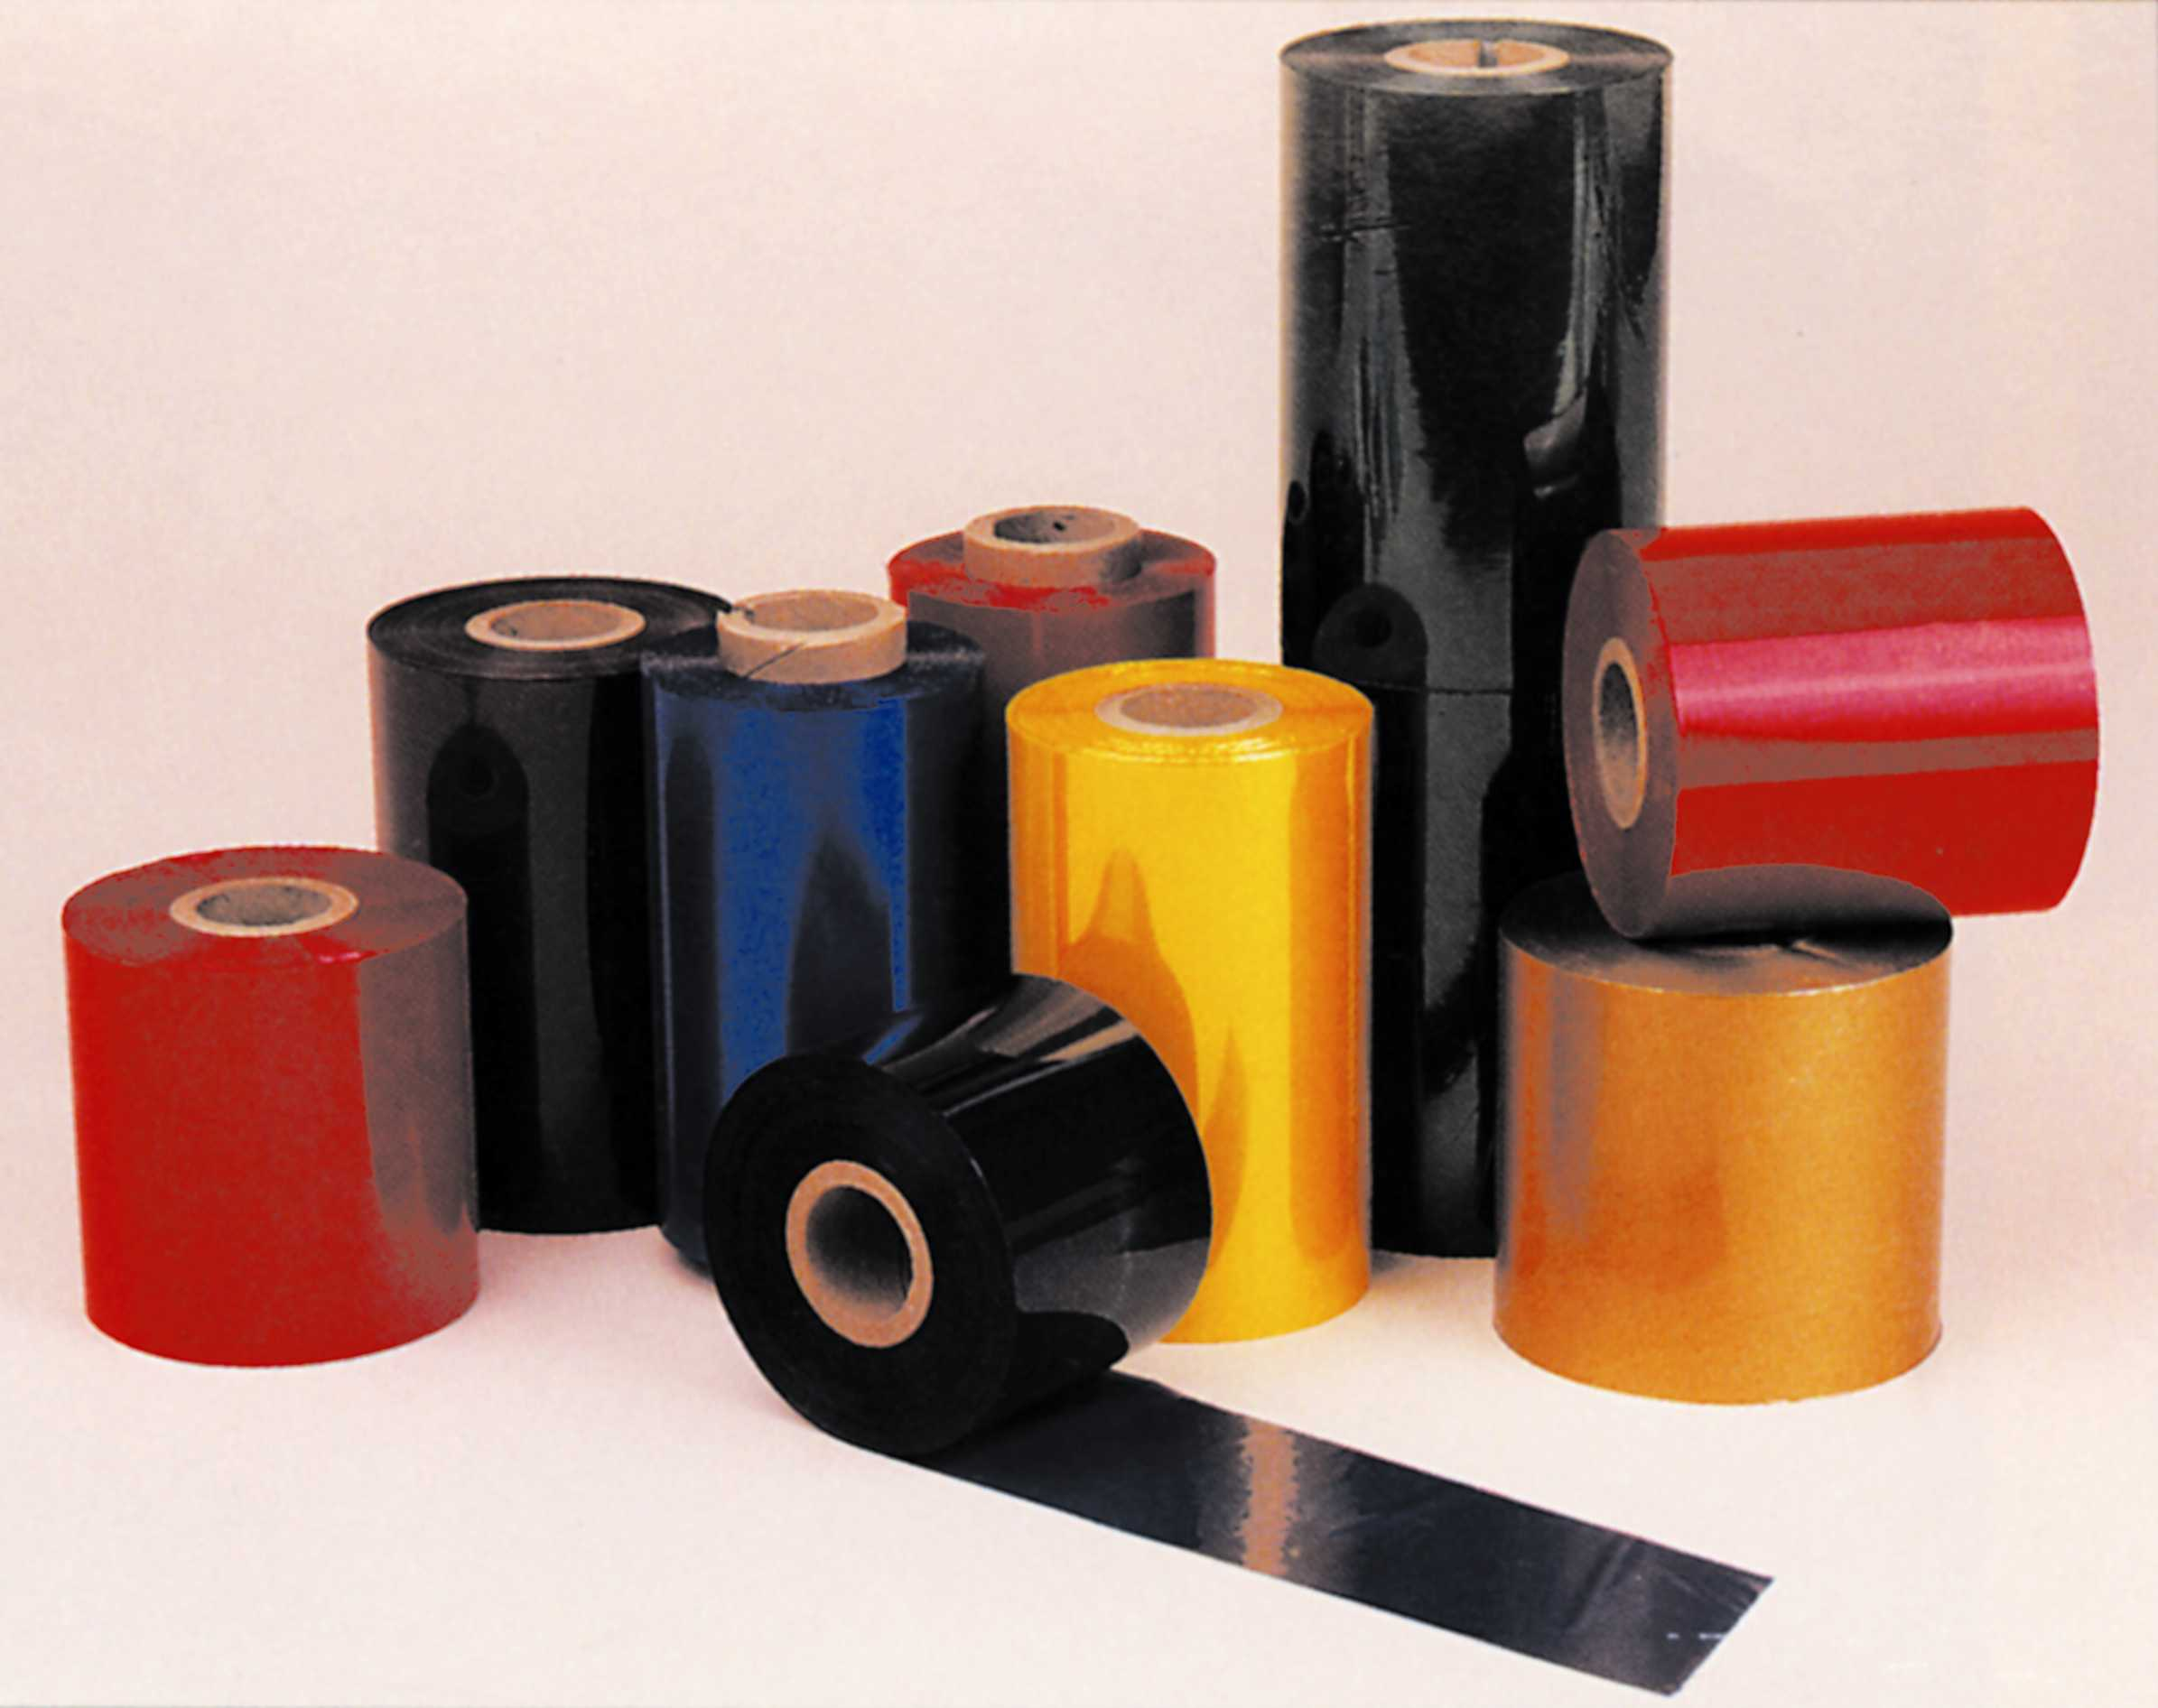 Wax Thermal Transfer Ribbons